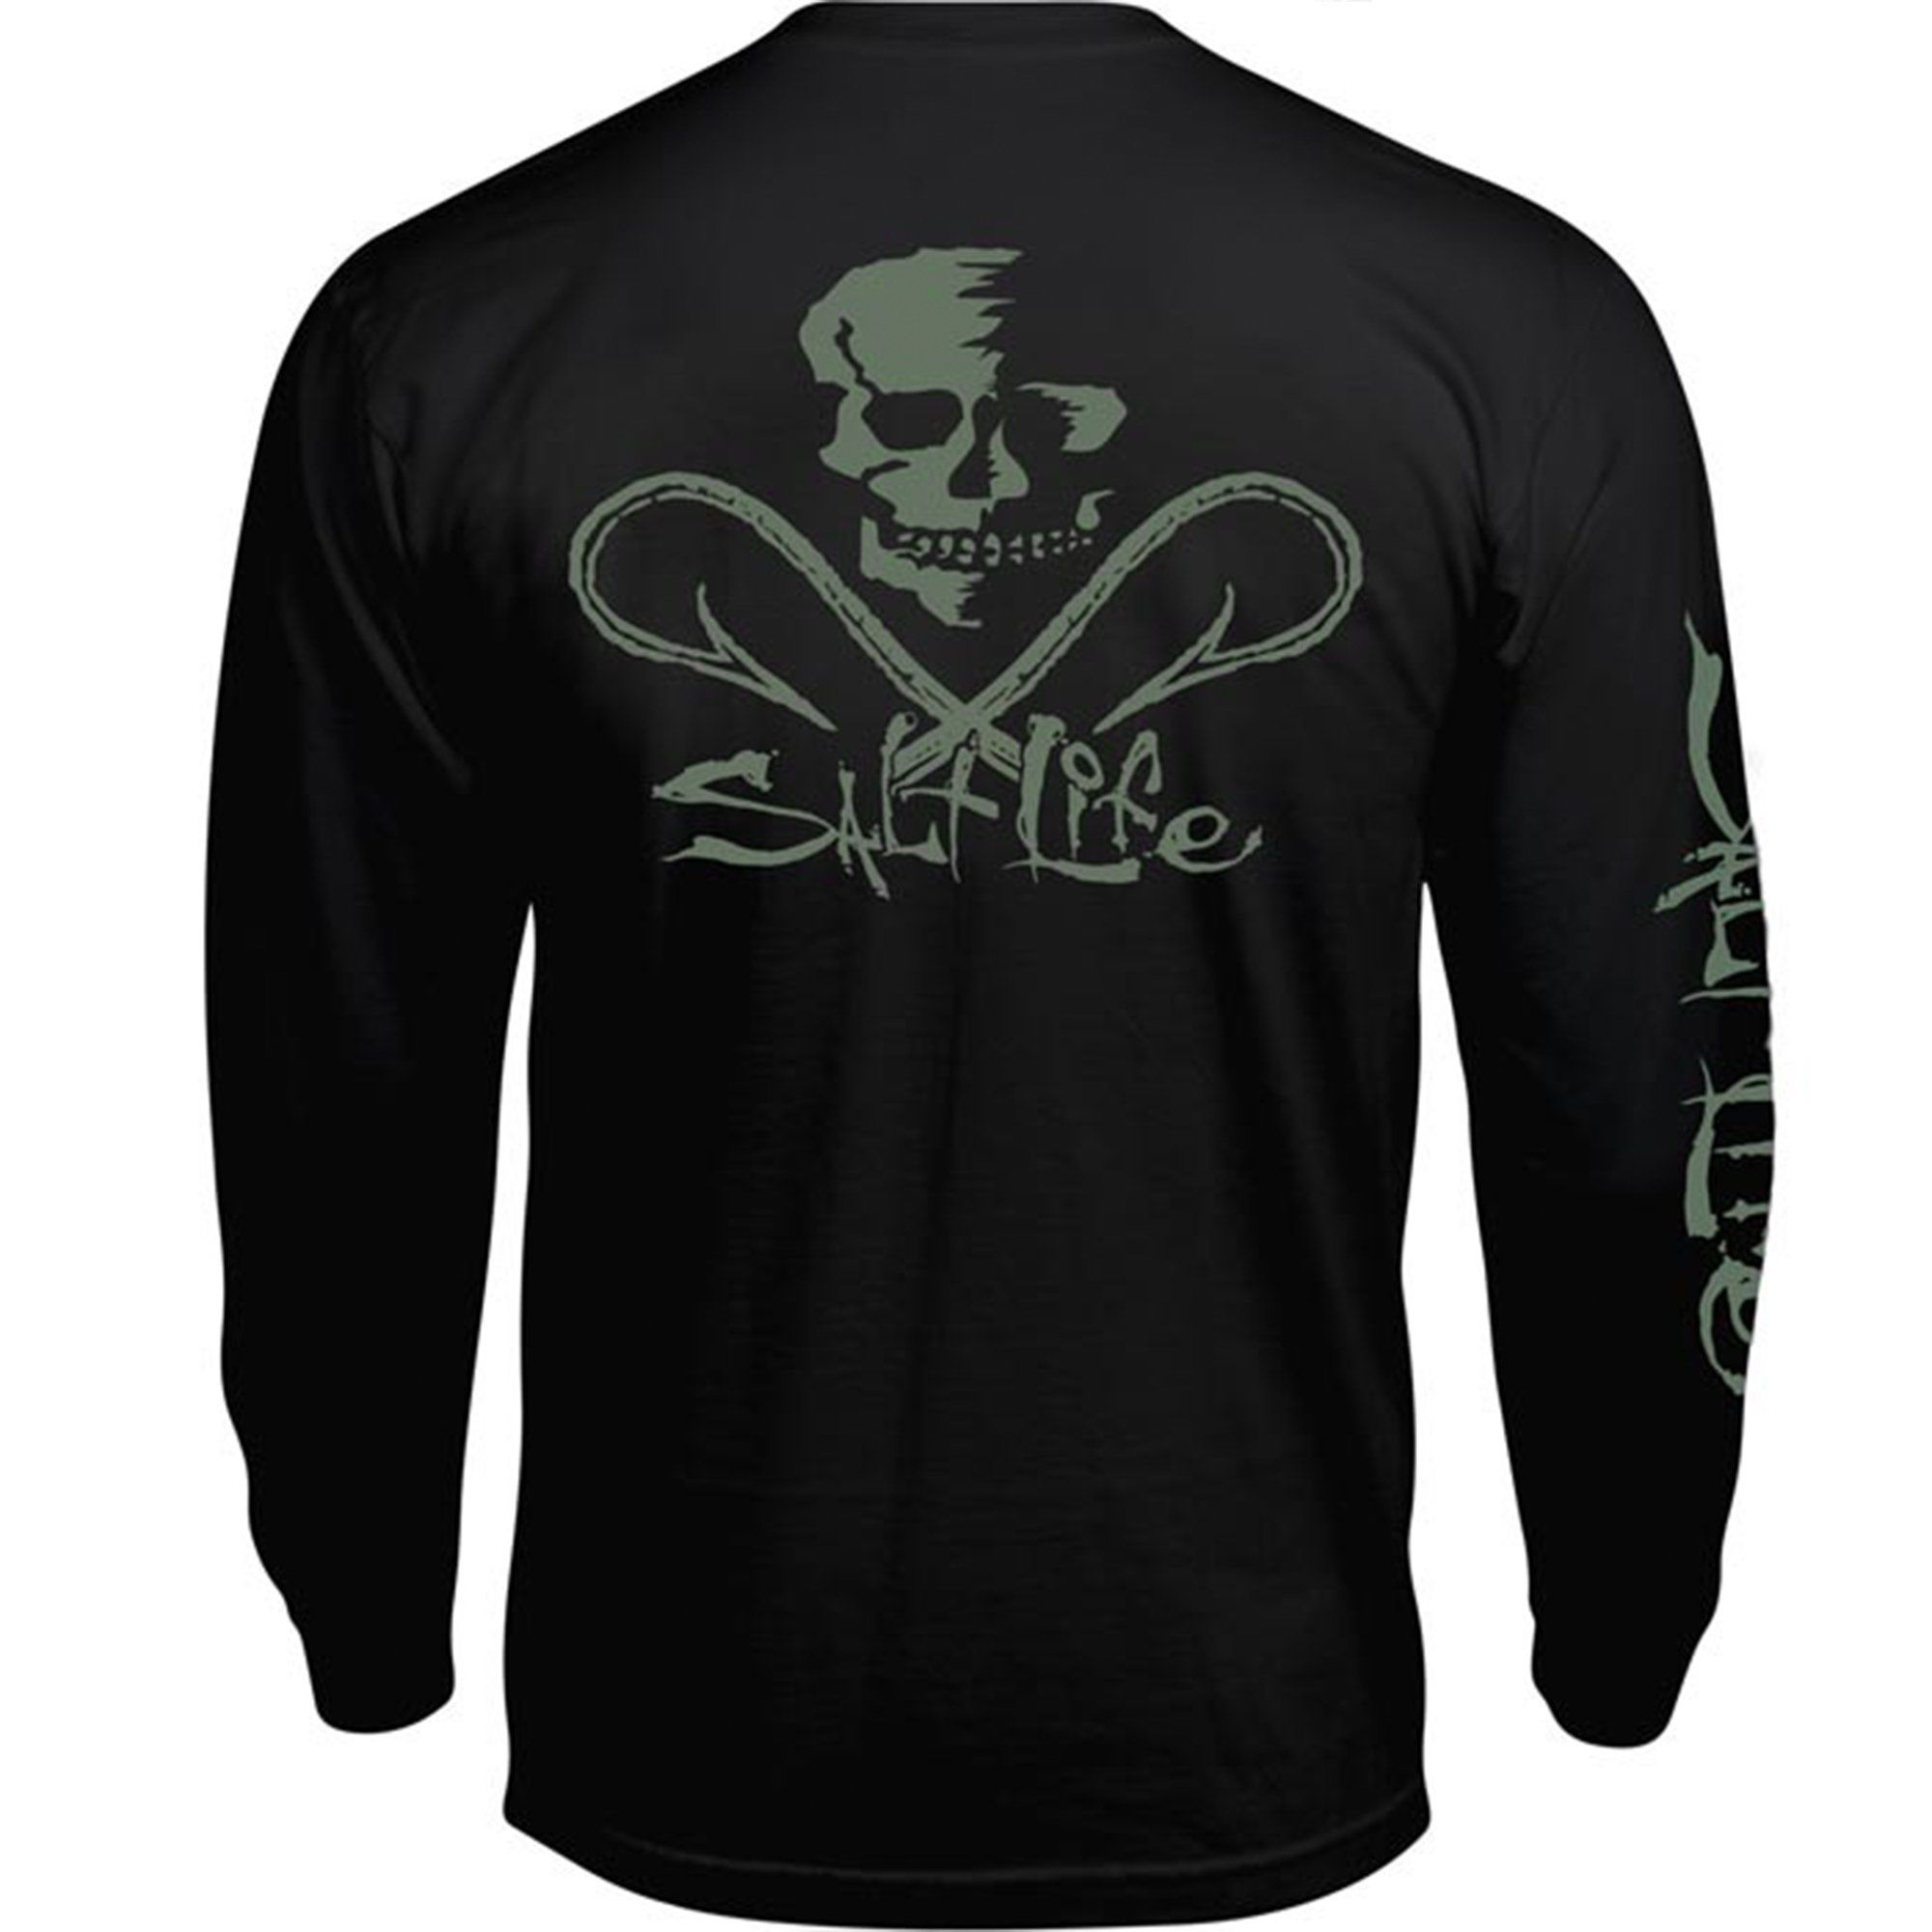 34e412d1bcc5 The Salt Life Skull and Hooks long sleeve pocket tee features a  screenprinted logo on the left chest, back and sleeve. - 100% preshrunk  ringspun cotton ...